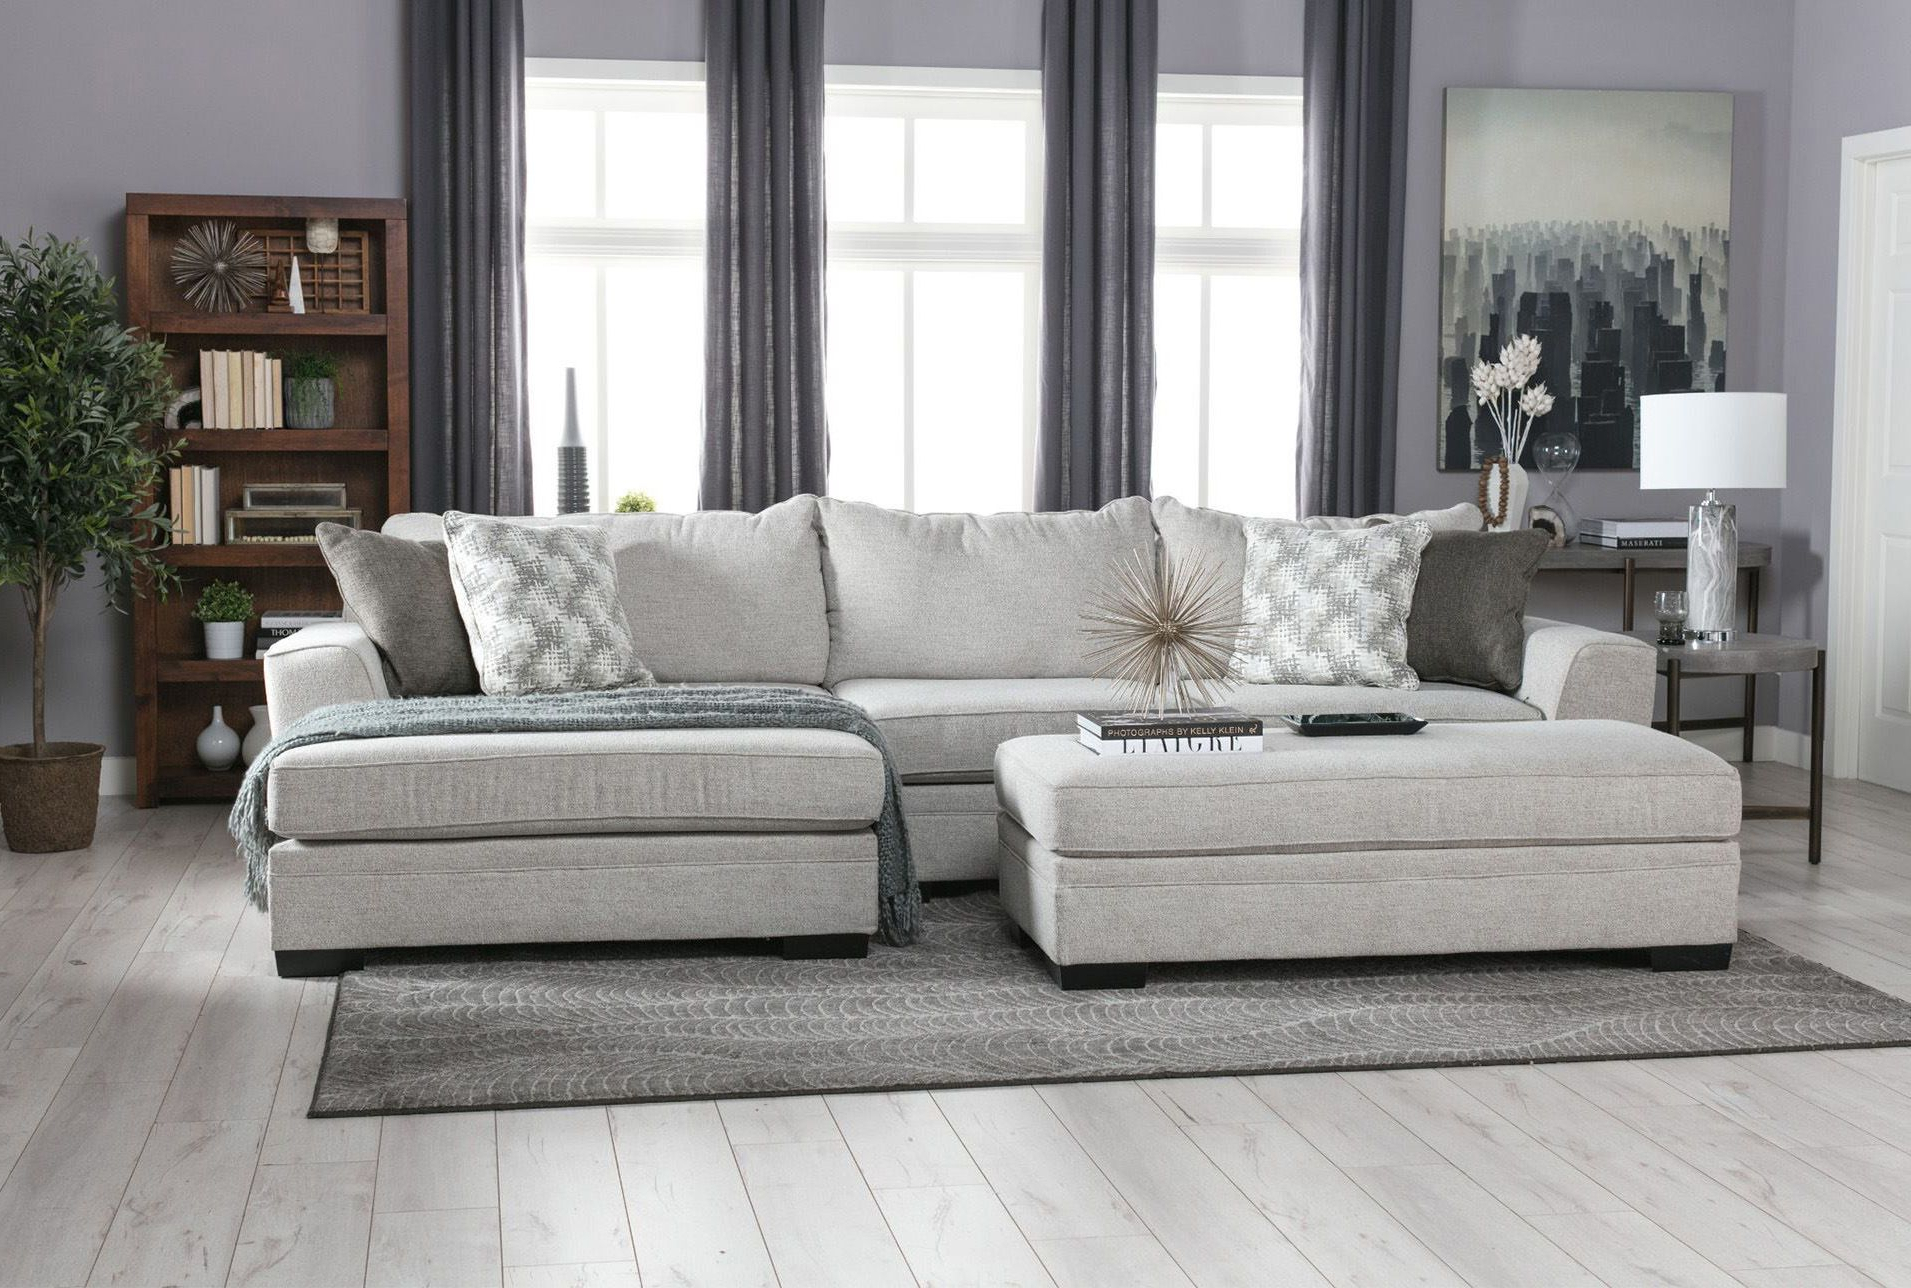 Best And Newest Aquarius Light Grey 2 Piece Sectionals With Laf Chaise Intended For Delano 2 Piece Sectional W/raf Oversized Chaise In  (View 5 of 20)